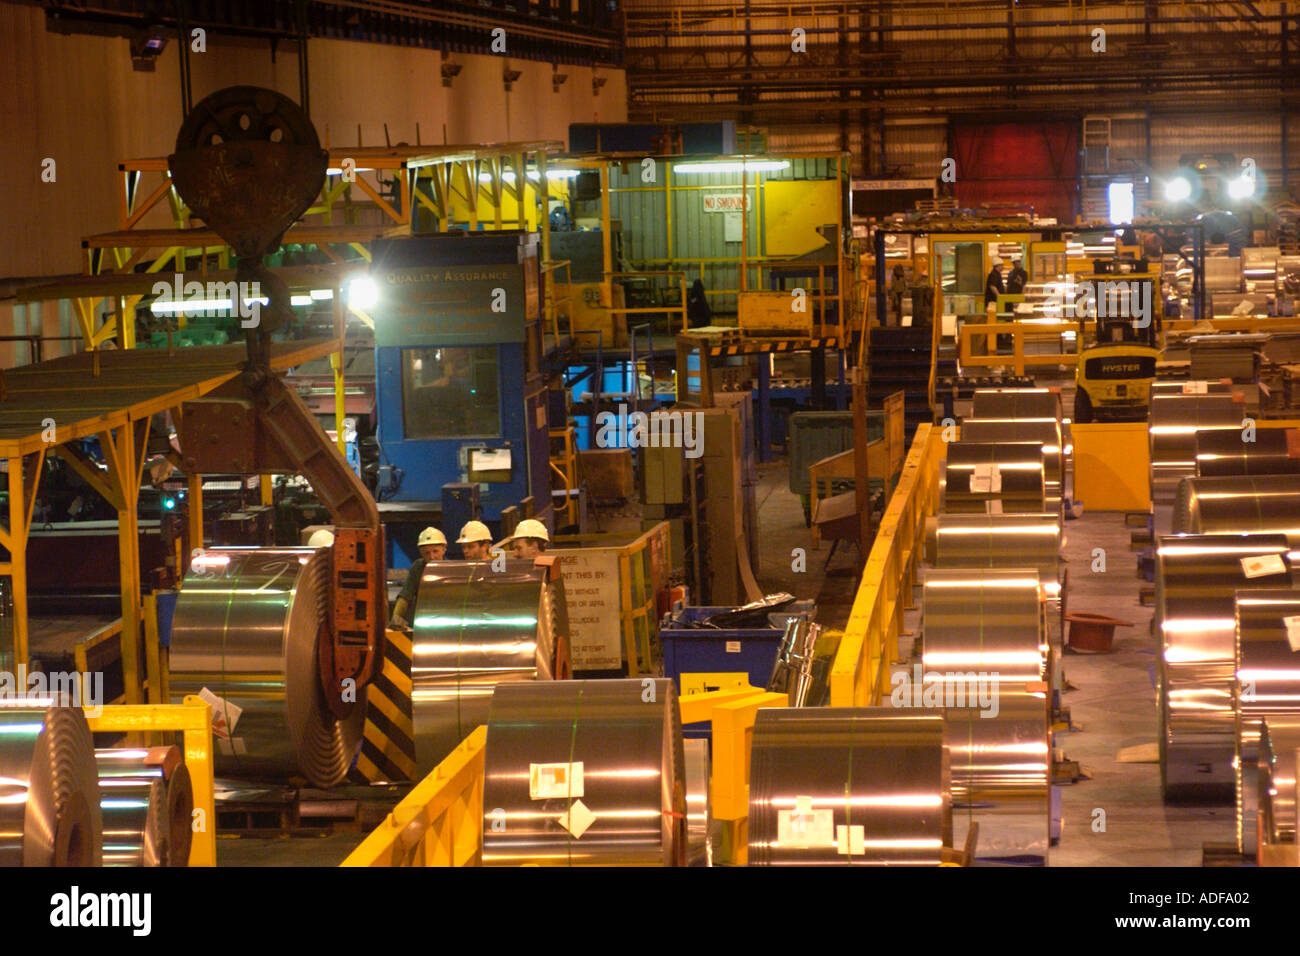 Corus Ebbw Vale tinplate works where there has been over 200 years of iron steel production South Wales UK - Stock Image